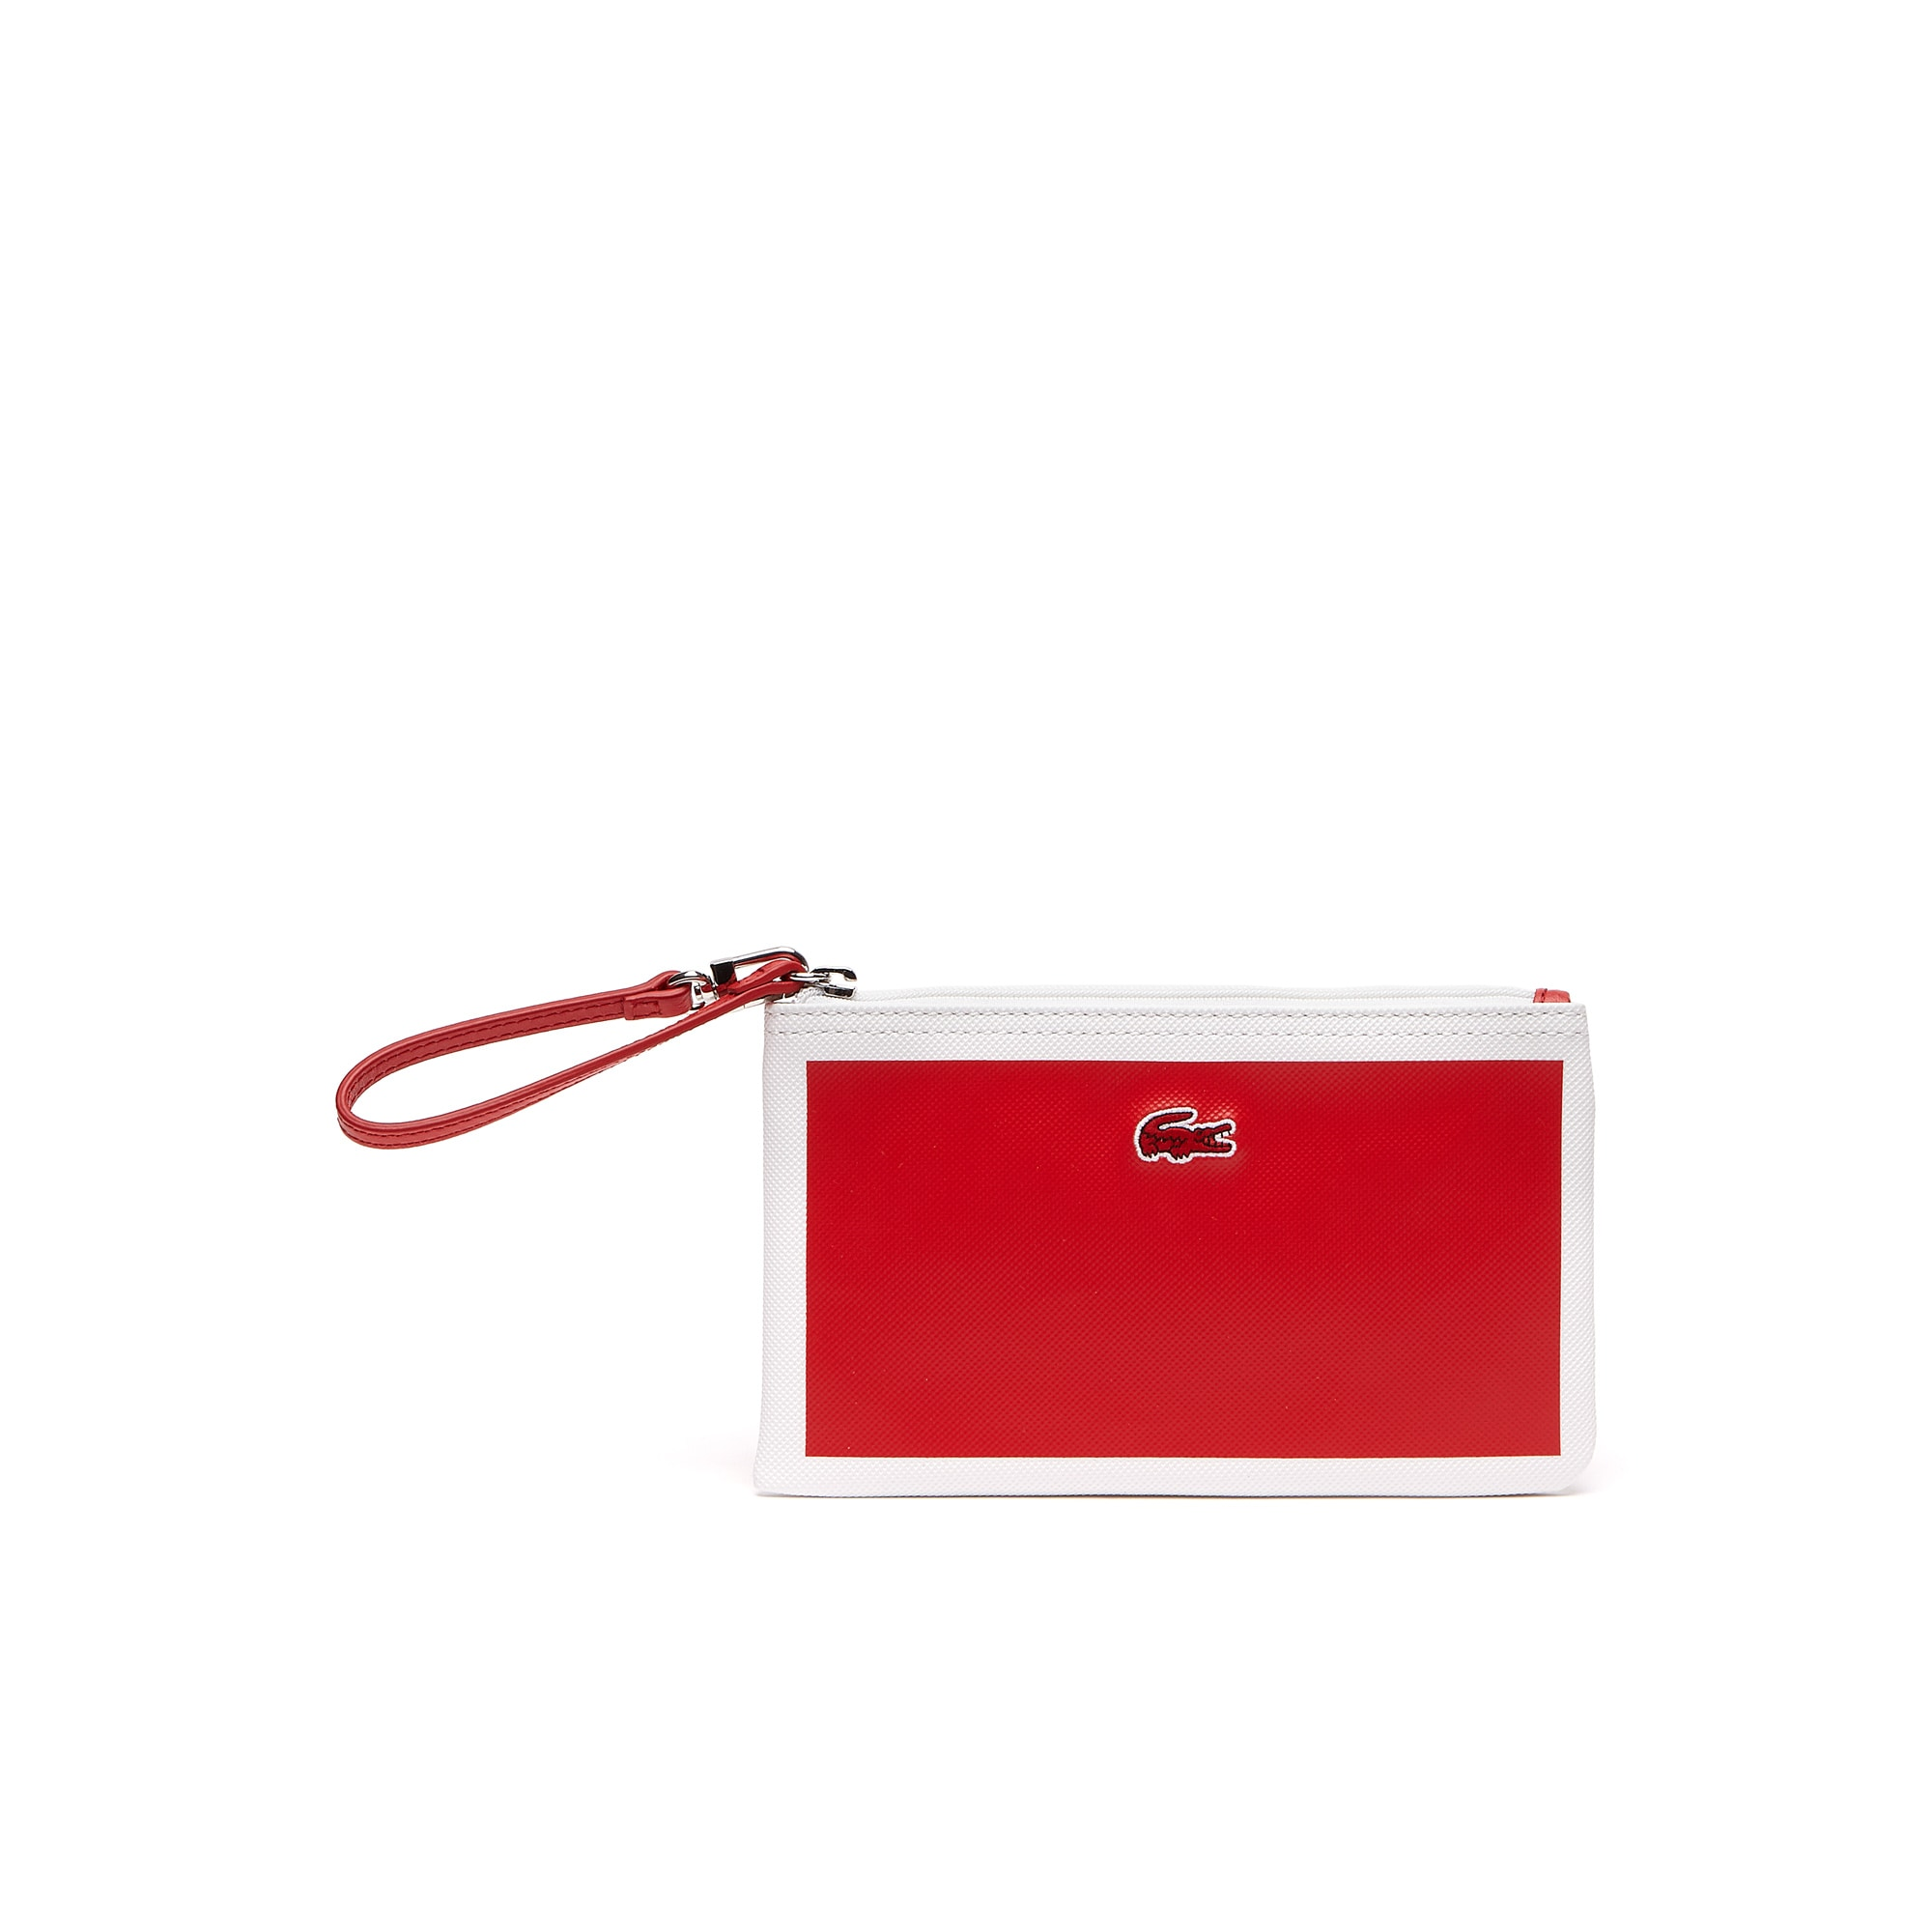 Women's L.12.12 Concept Colorblock Petit Piqué Zip Clutch